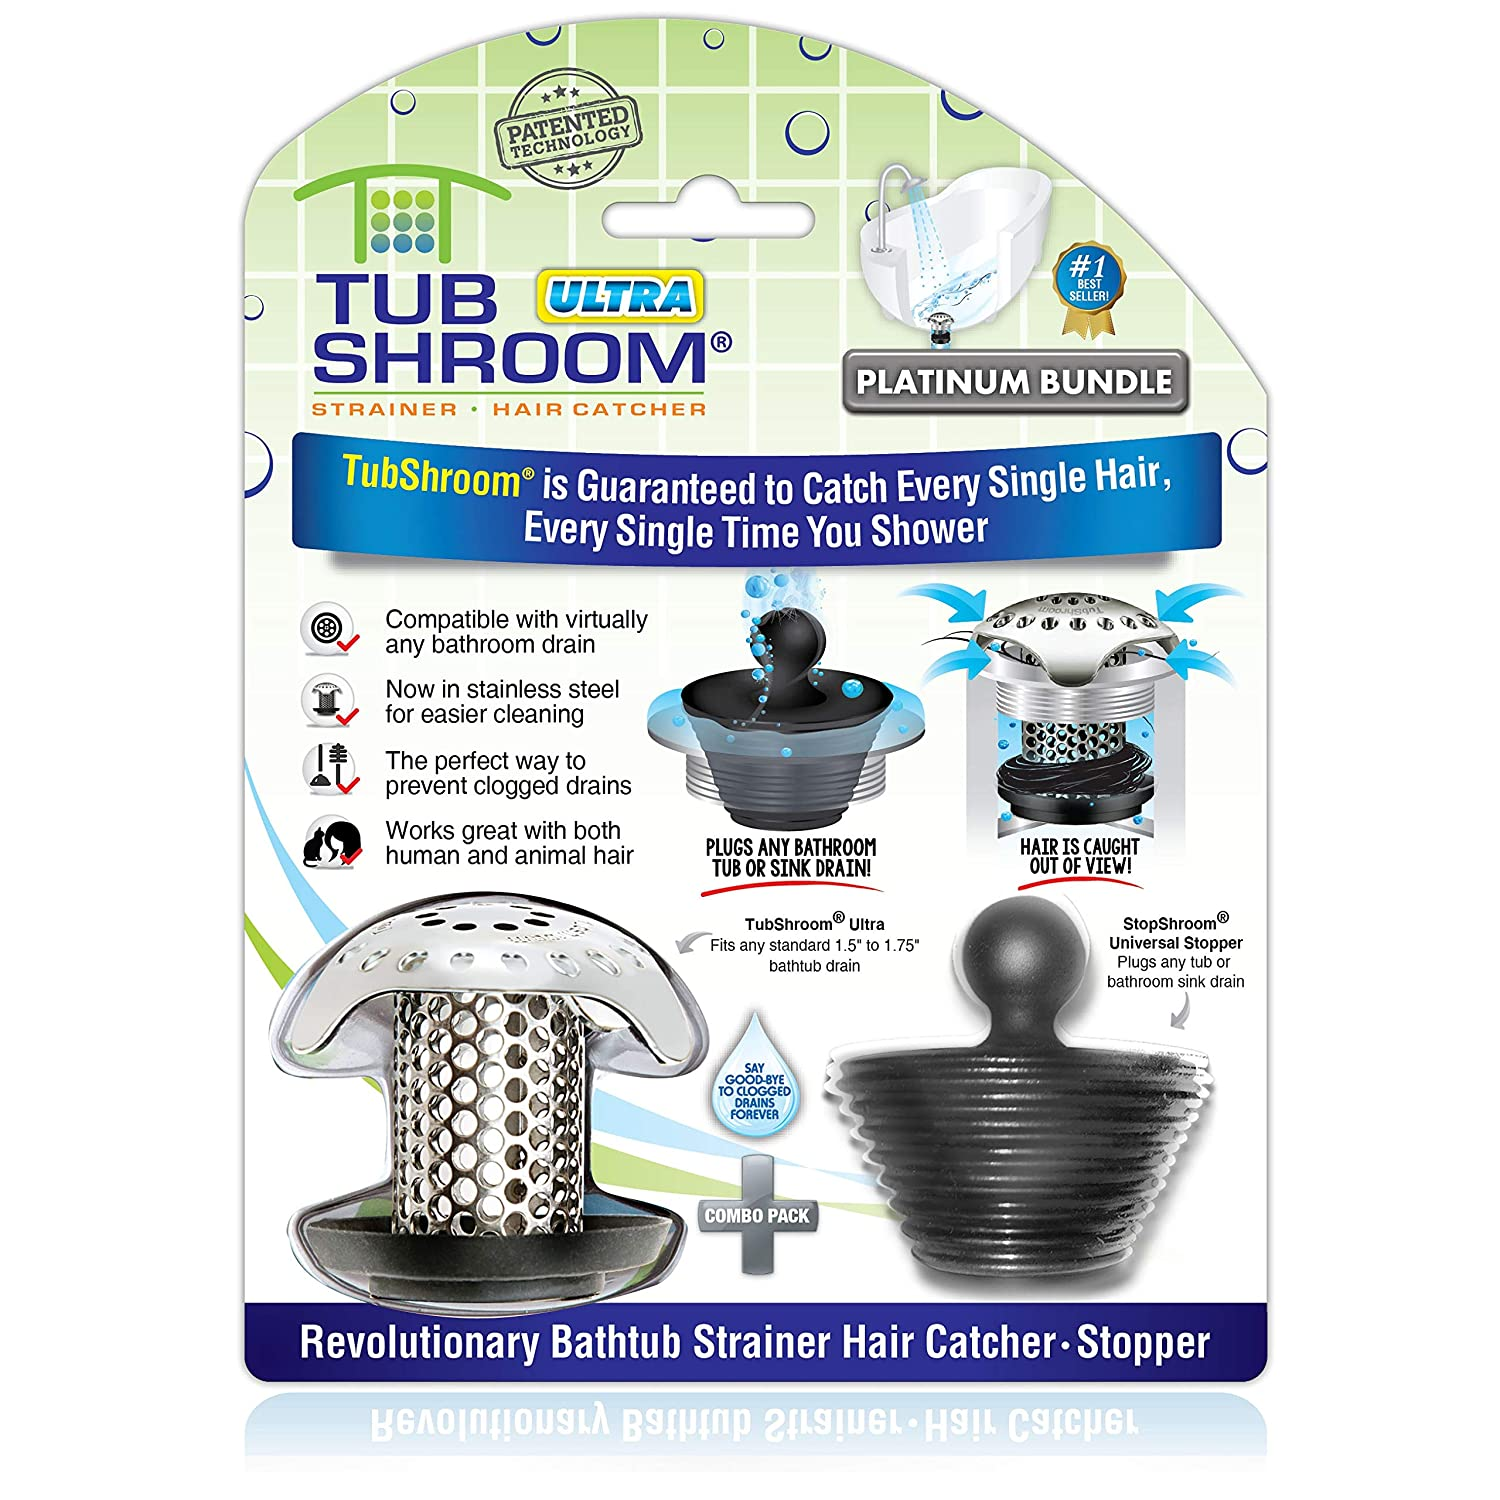 TubShroom Ultra Revolutionary Bath Tub Drain Protector Hair Catcher/Strainer/Snare, Stainless Steel